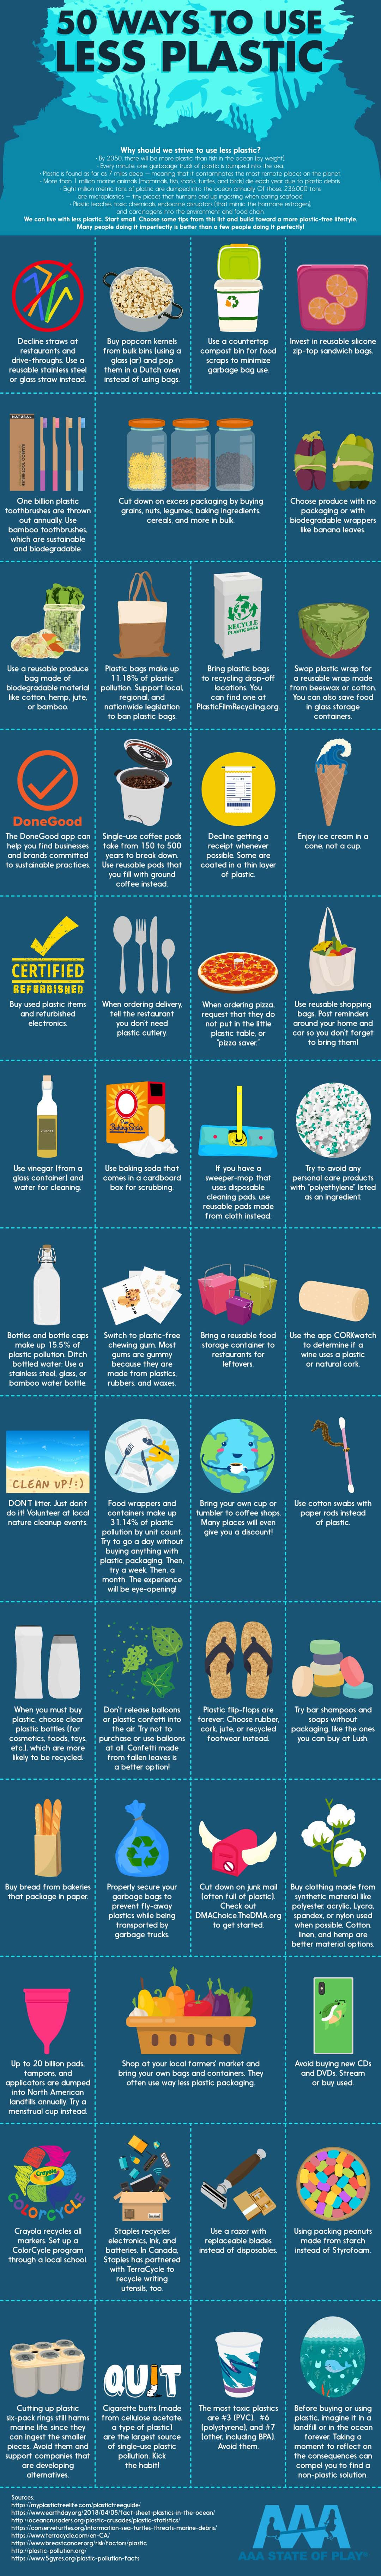 50 Ways to Use Less Plastic